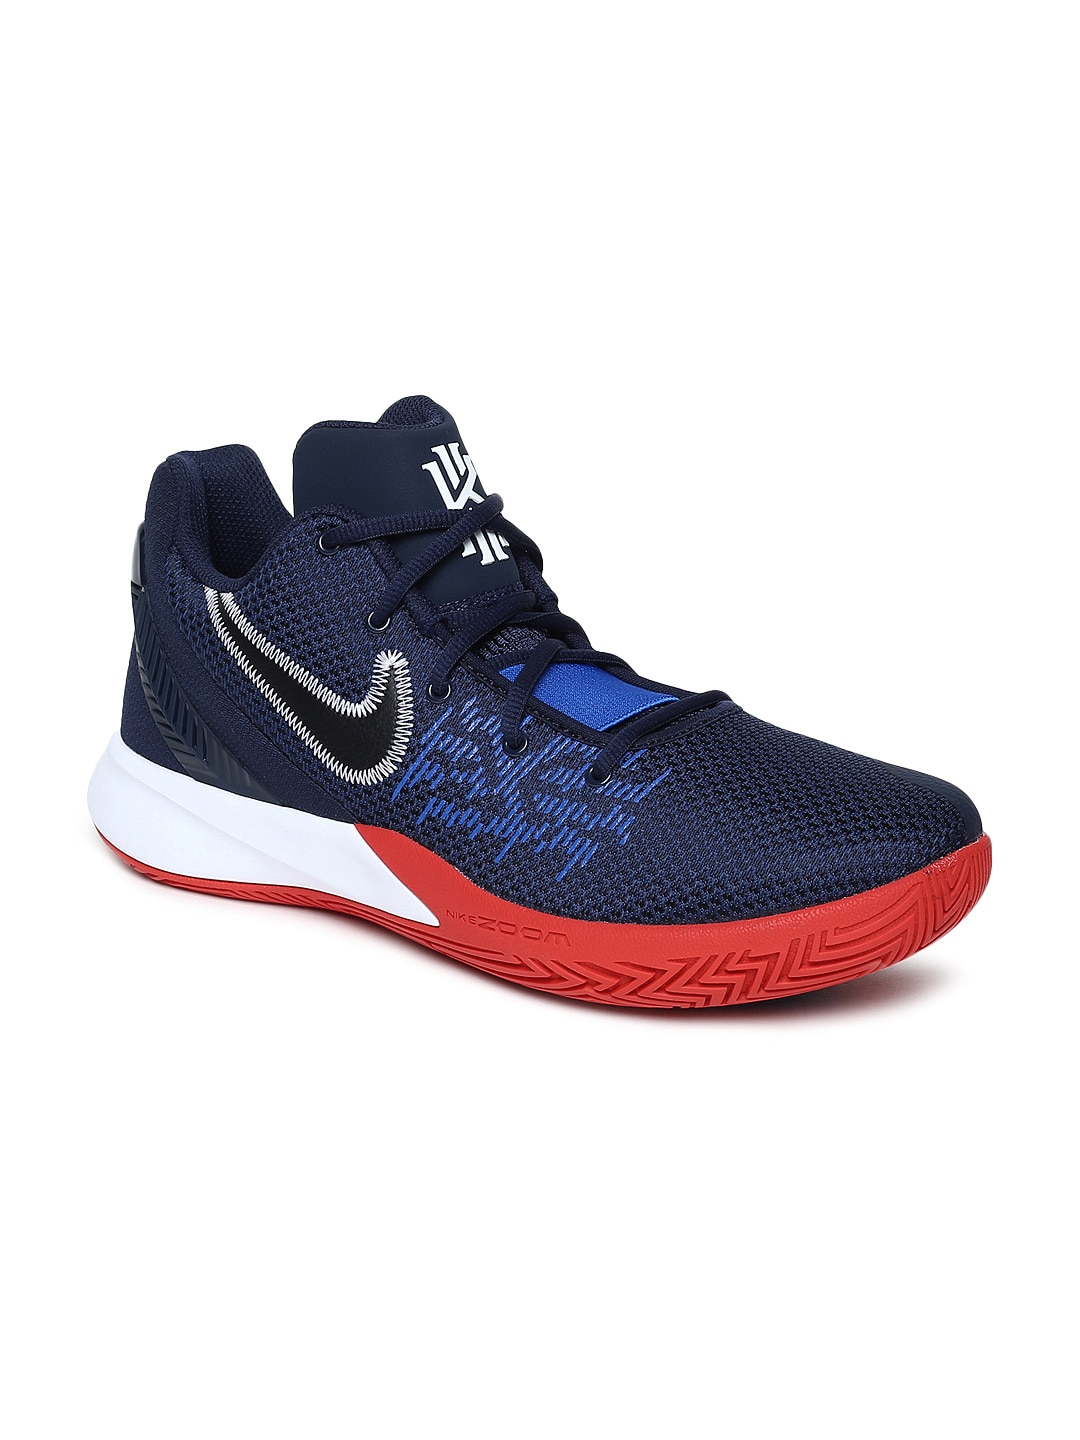 63b1473b2141 Nike Basketball Shoes